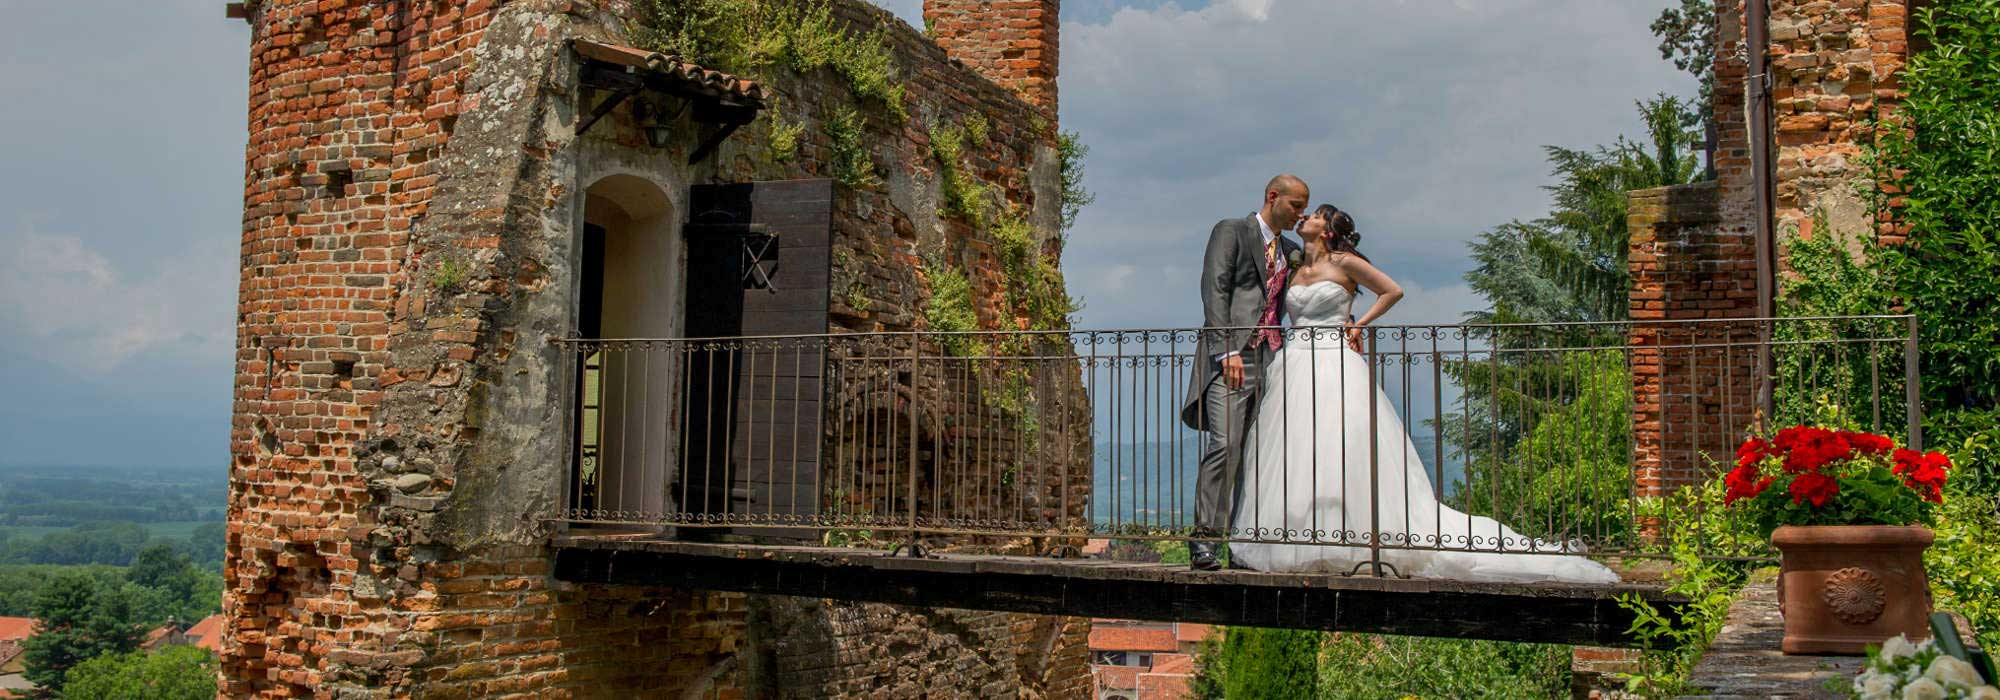 wedding-in-Moncrivello-castle.jpg